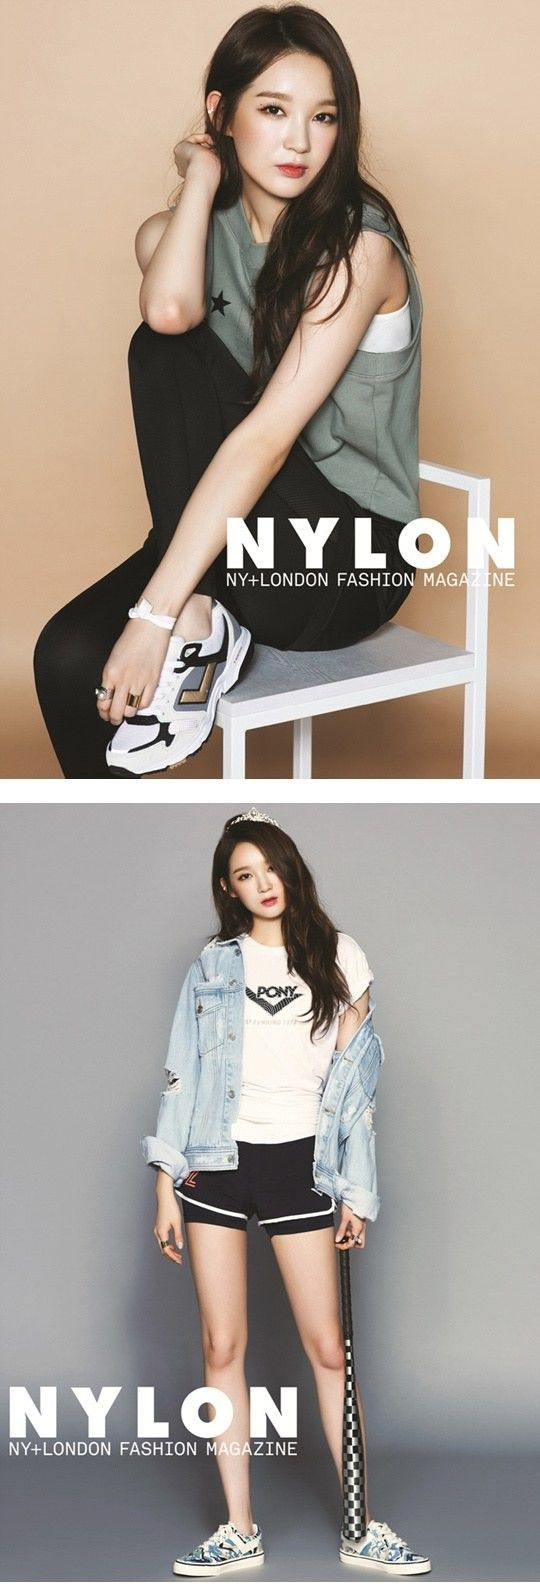 'Nylon' Magazine Features Kang Min Kyung as a Tomboy Princess | Koogle TV